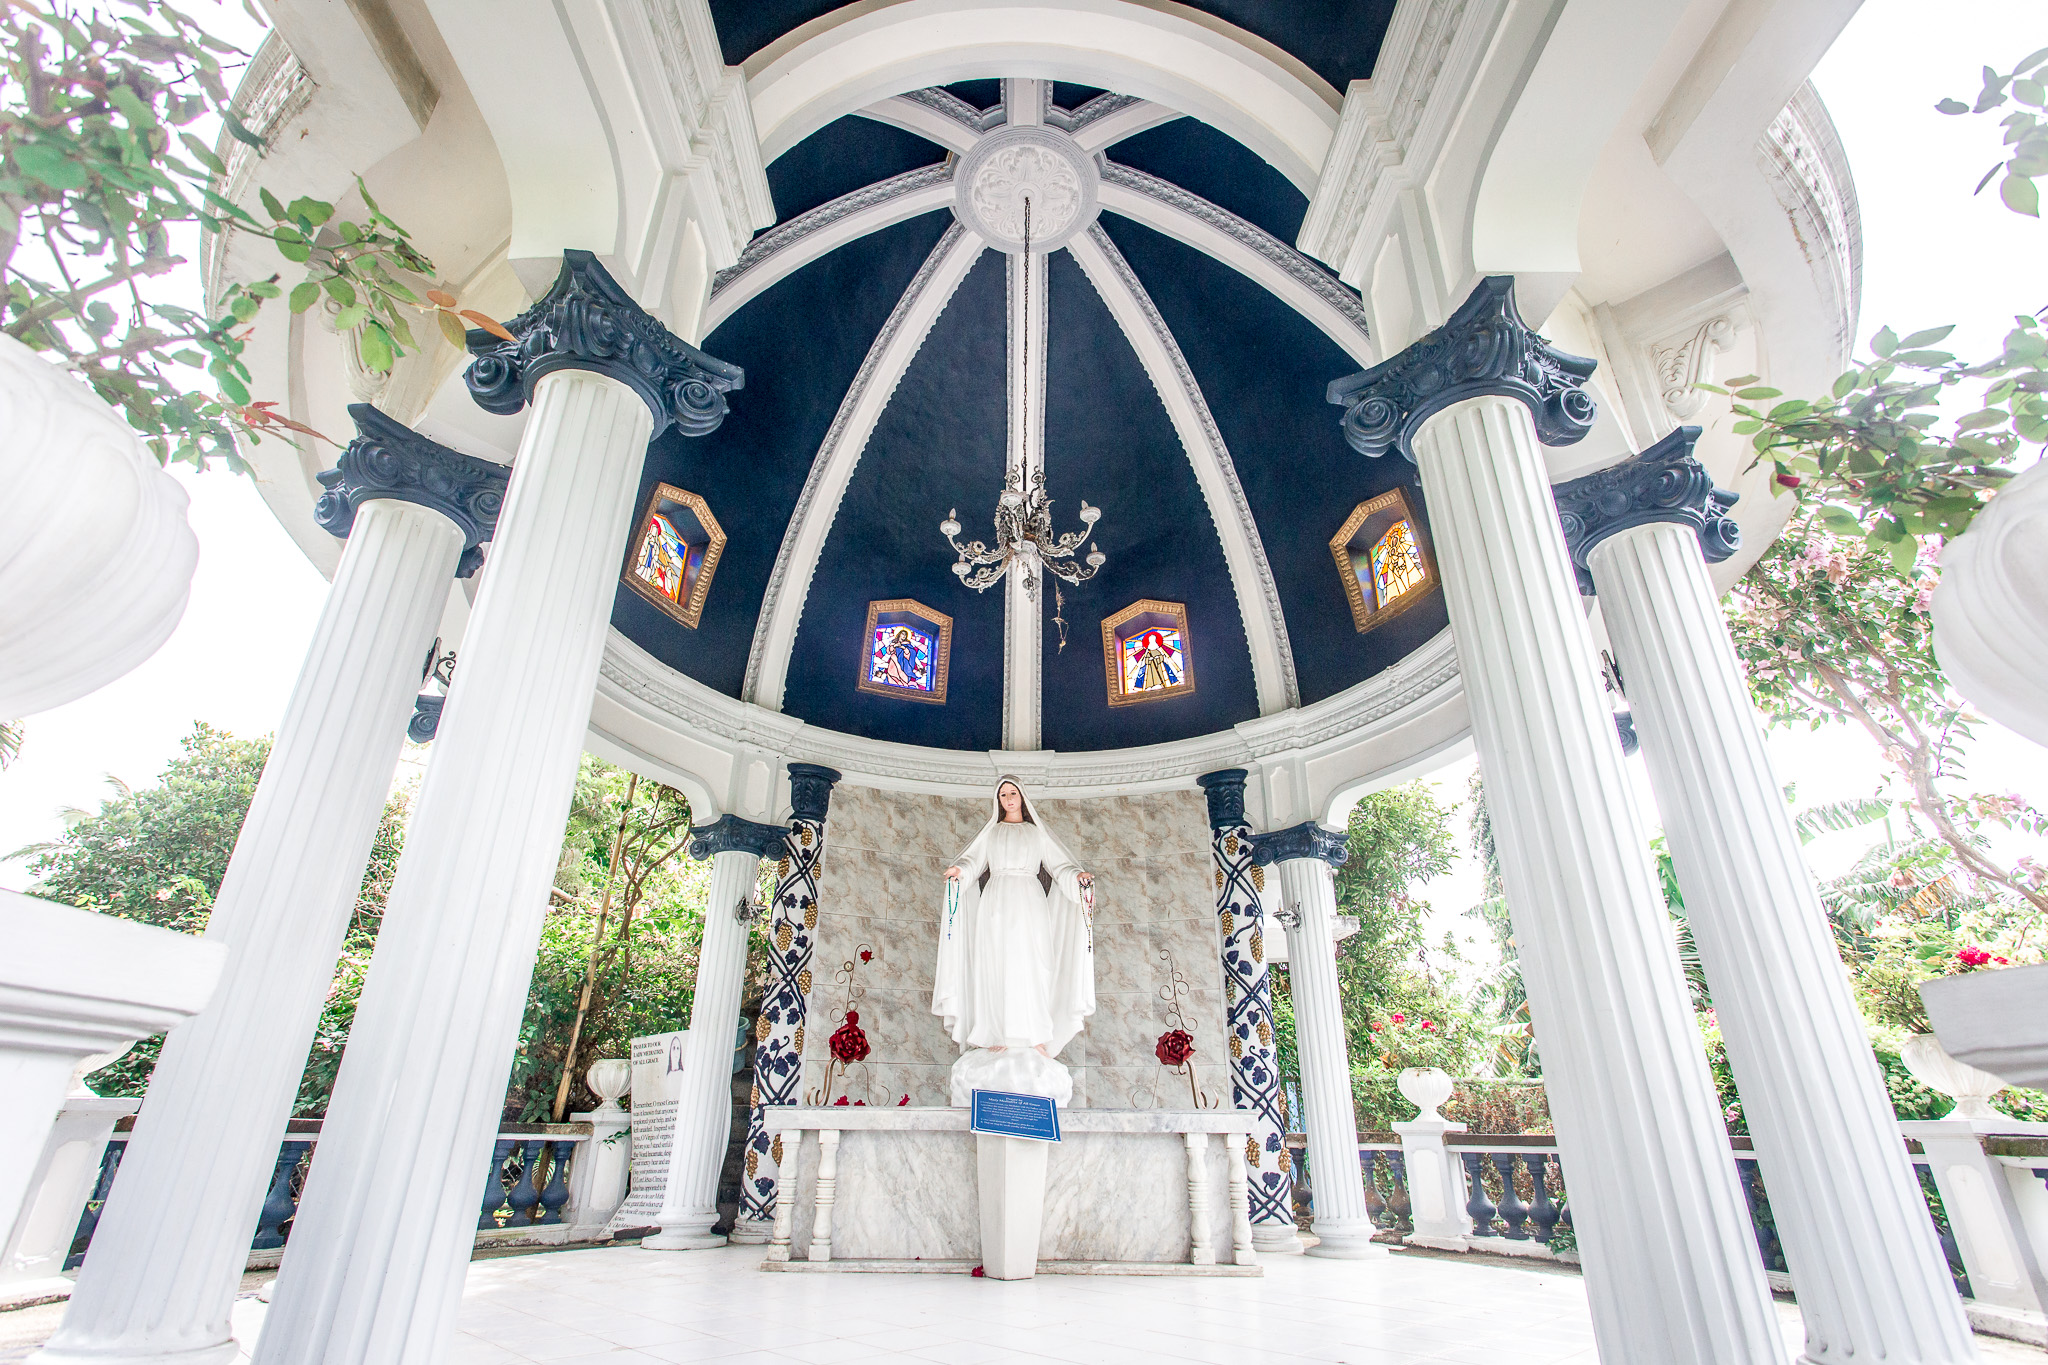 Dome of Mary Mediatrix